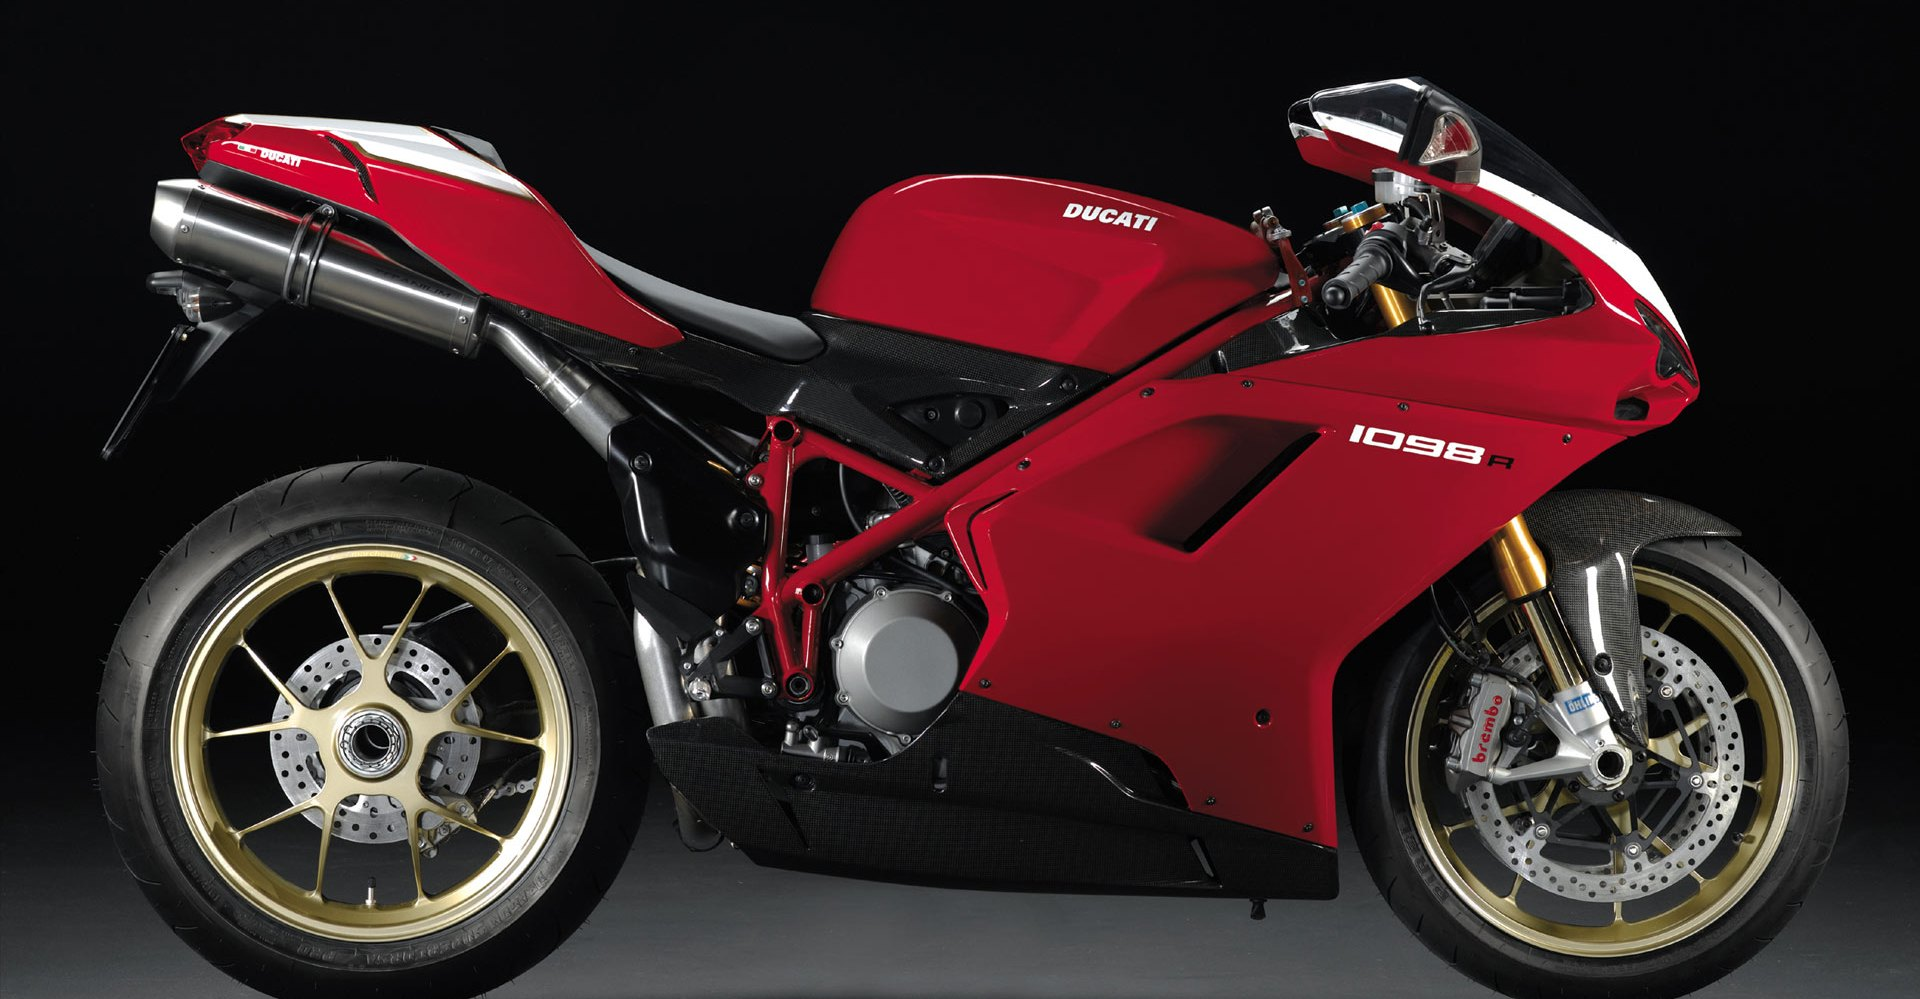 Ducati Supersport 1000 DS Full-fairing 2003 images #79039